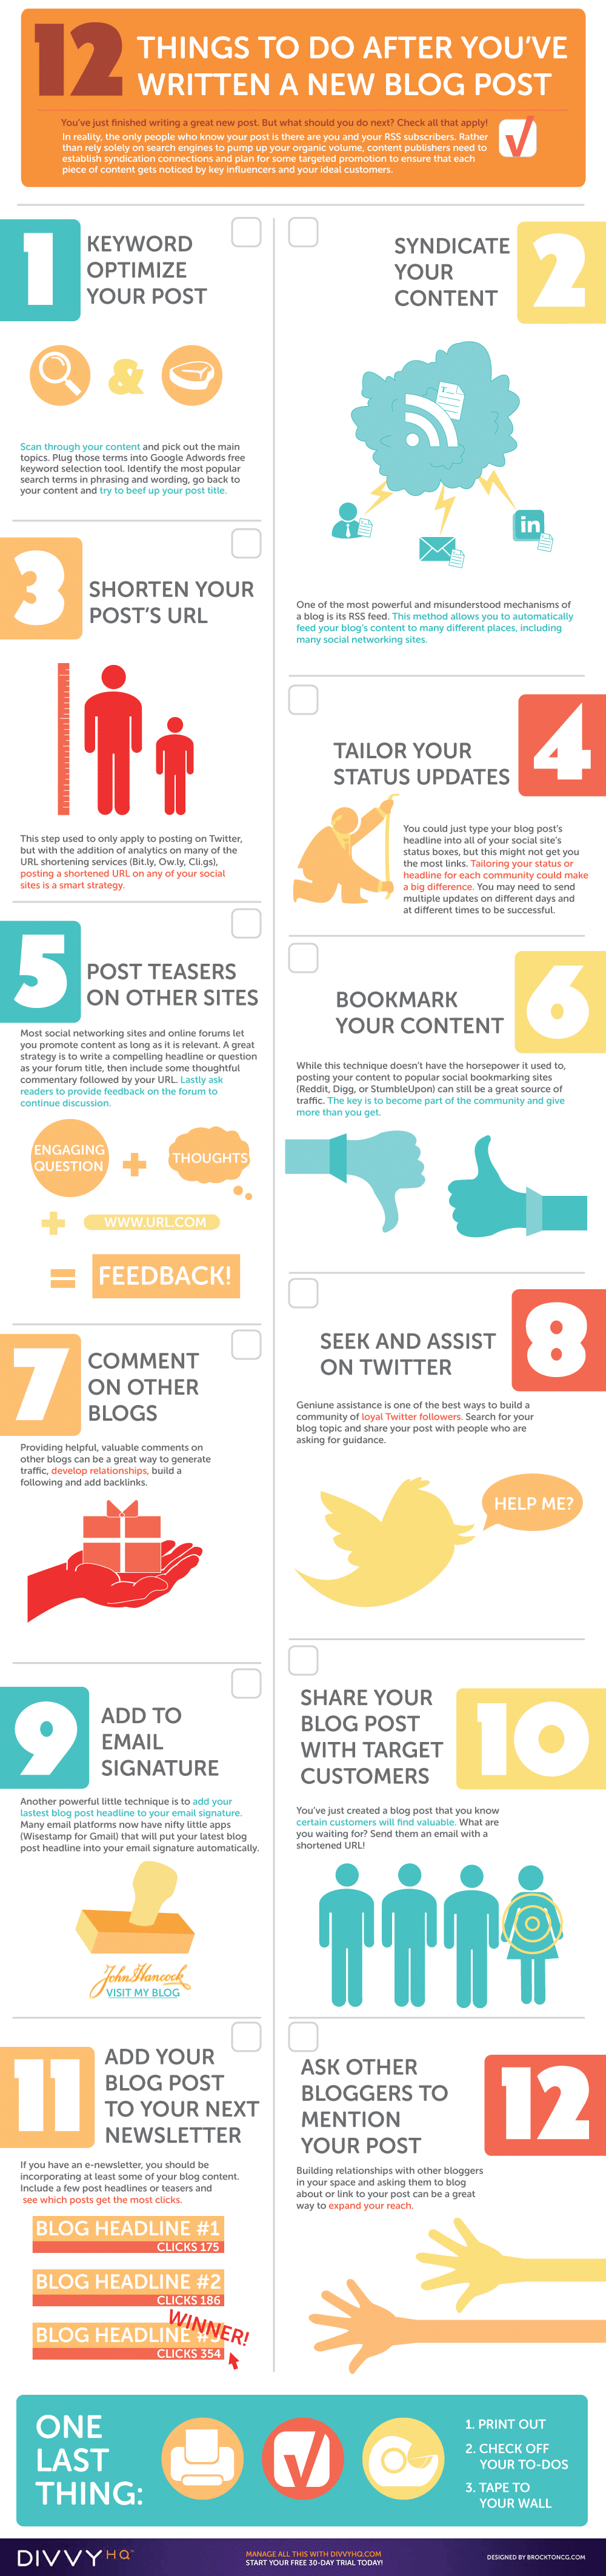 new-blog-post-checklist-infographic